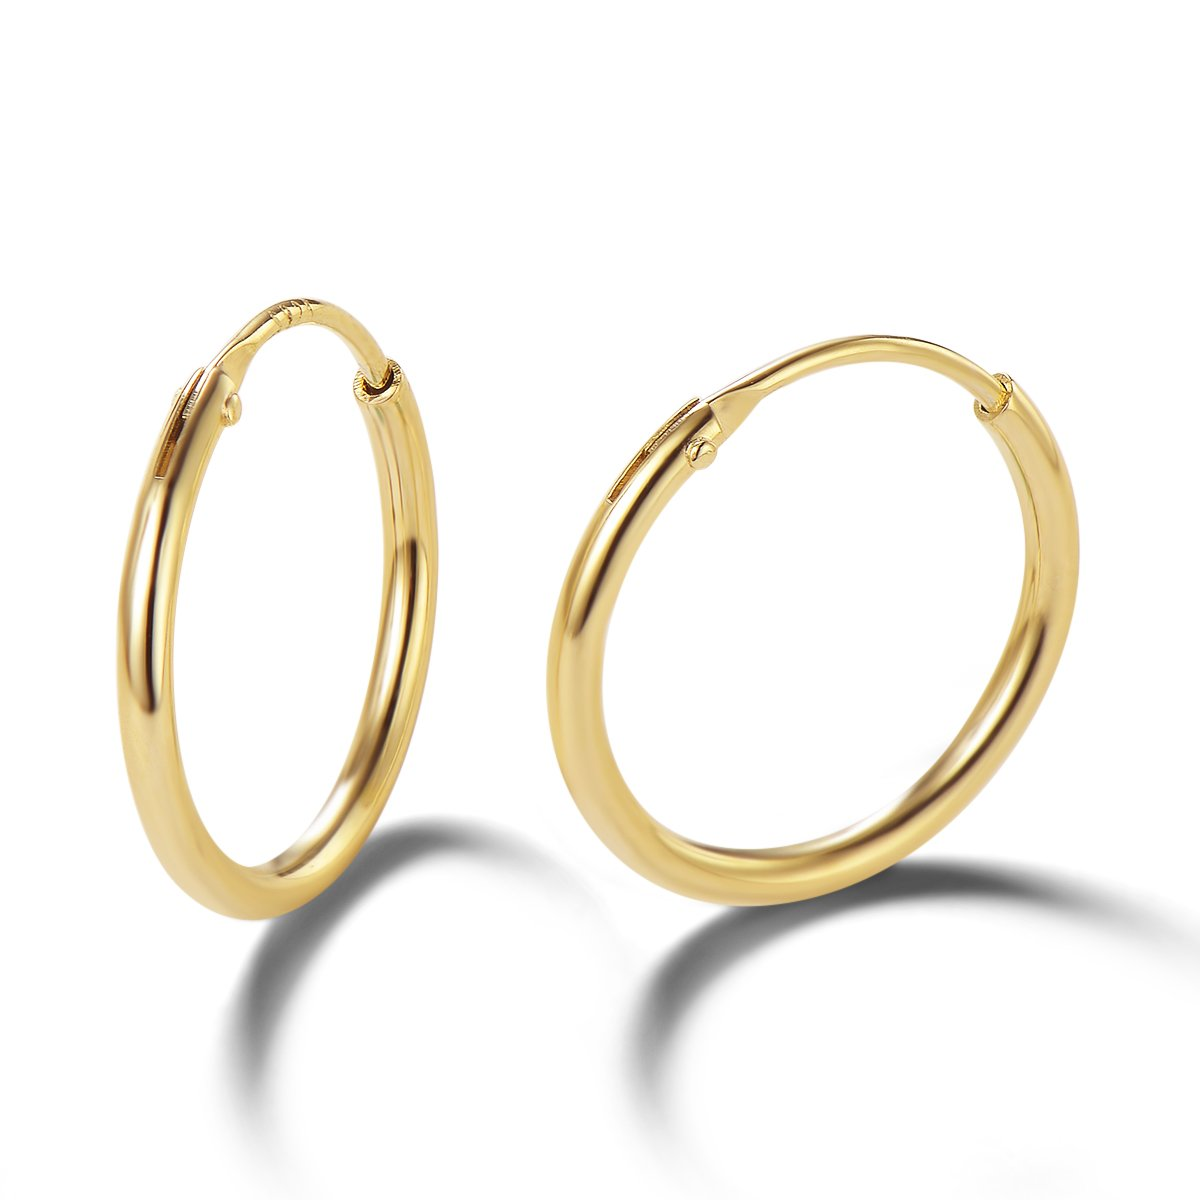 Carleen 14K Yellow Gold Plated 925 Sterling Silver Dainty Endless Hoop Earrings for Women Girls (13mm)